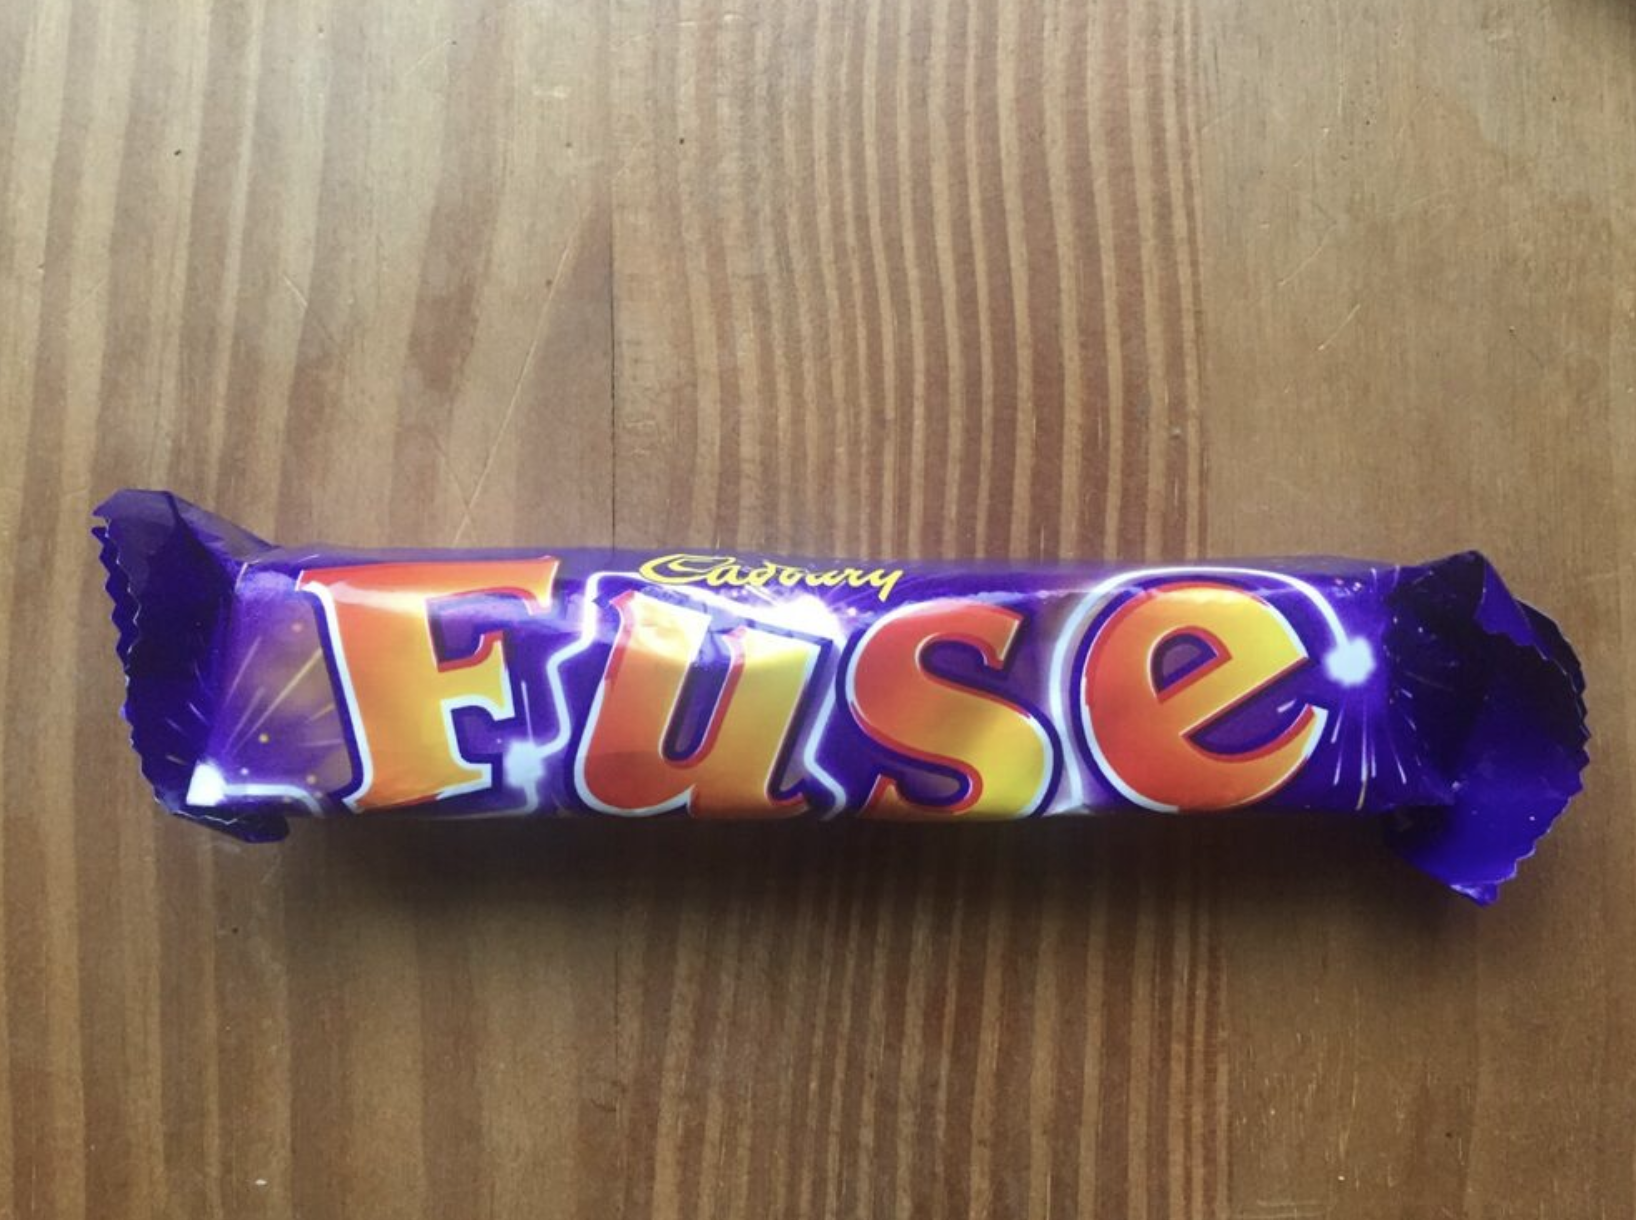 Chocolate bars that don't exist 11